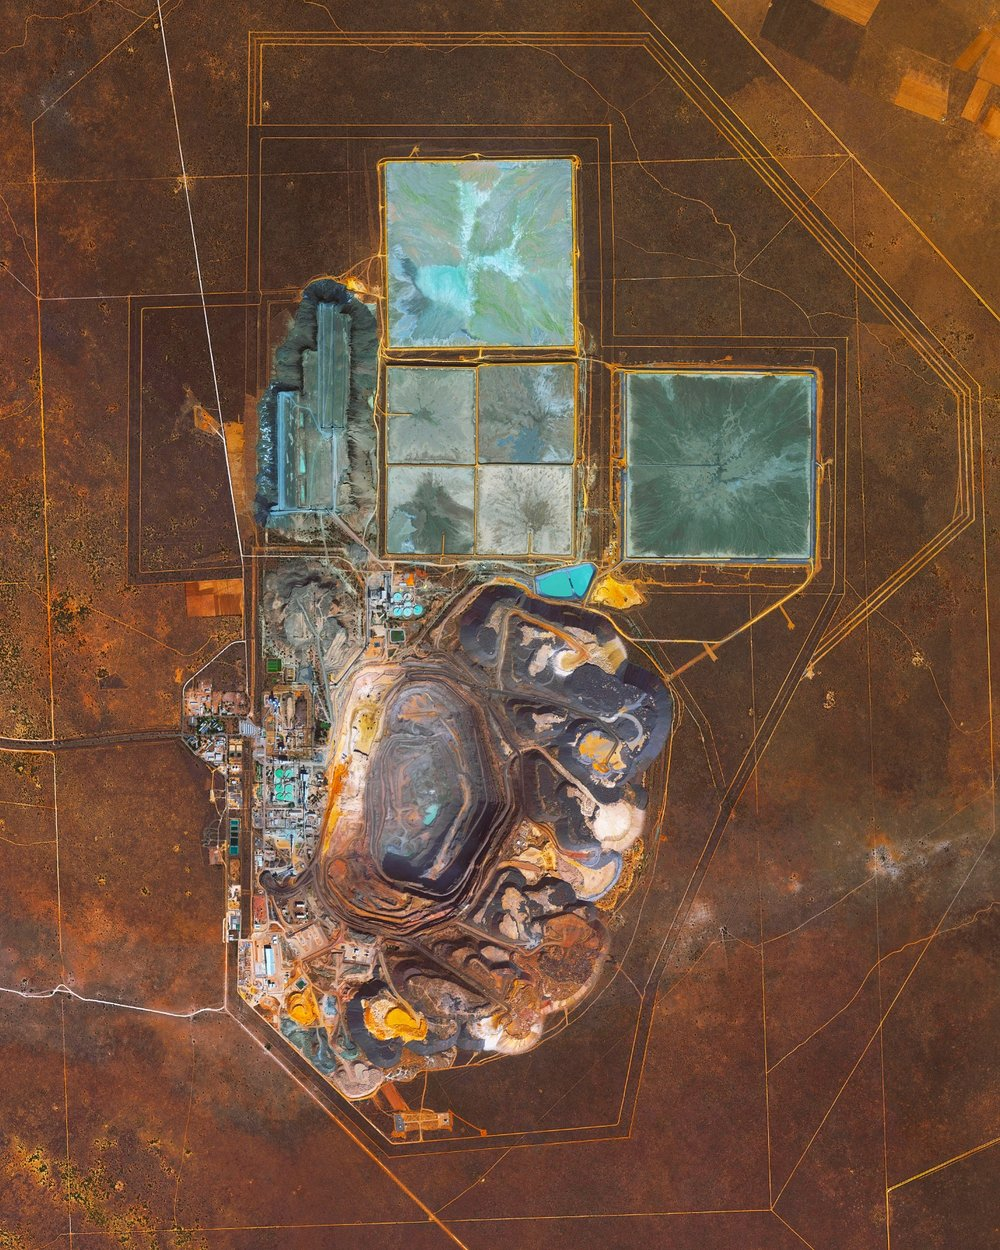 The Jwaneng Diamond Mine in Botswana is the richest diamond mine in the world, with an annual output of approximately 15.6 million carats. Mine richness takes into account the rate of diamond extraction combined with the quality of the diamonds that are mined (sale price per weight). To extract the diamonds, the facility produces 9.3 million tonnes of ore and an additional 37 million tonnes of waste rock per year. –24.523050°, 24.699750°